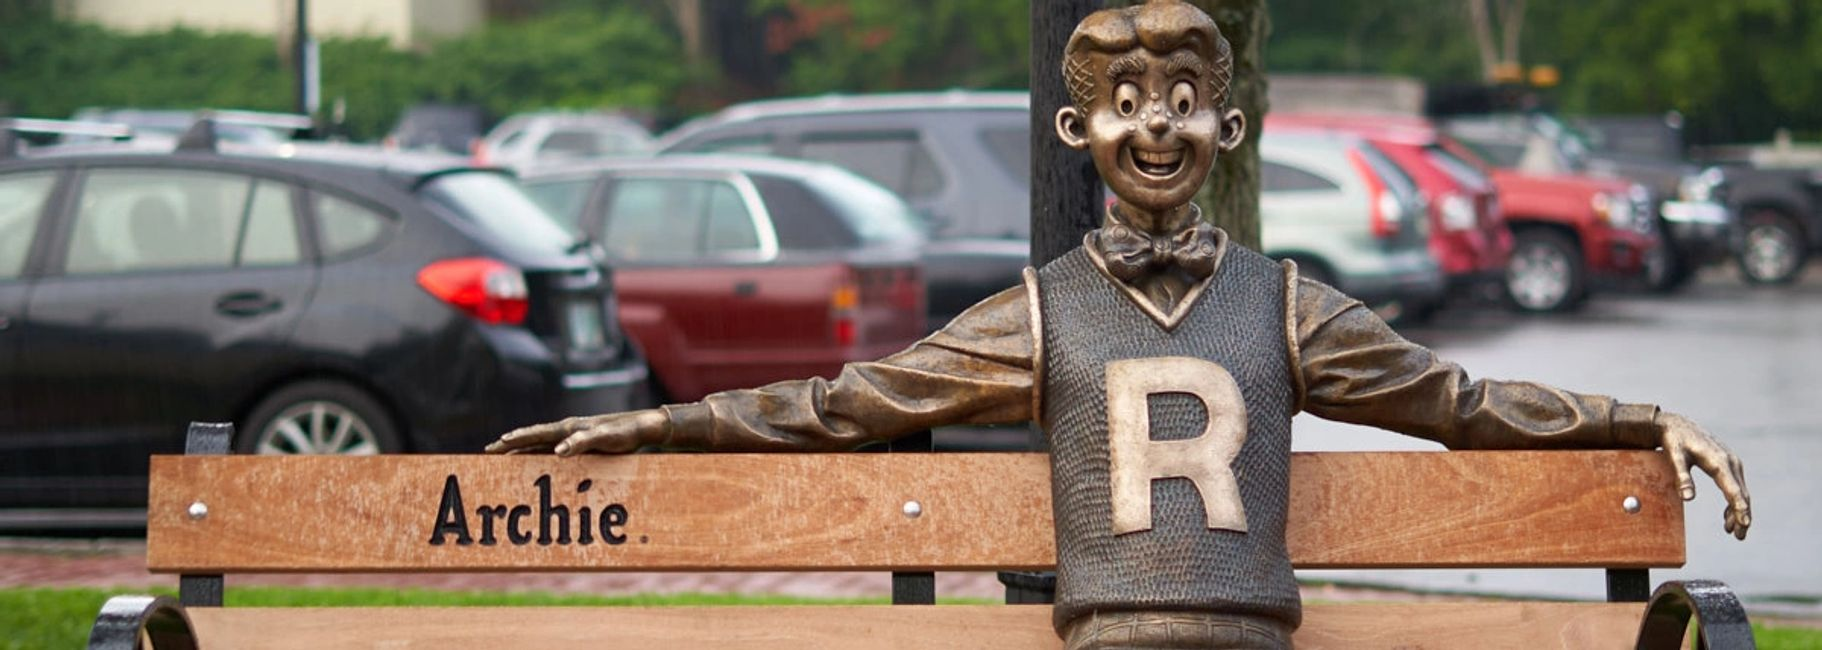 Archie Statue, Meredith New Hampshire